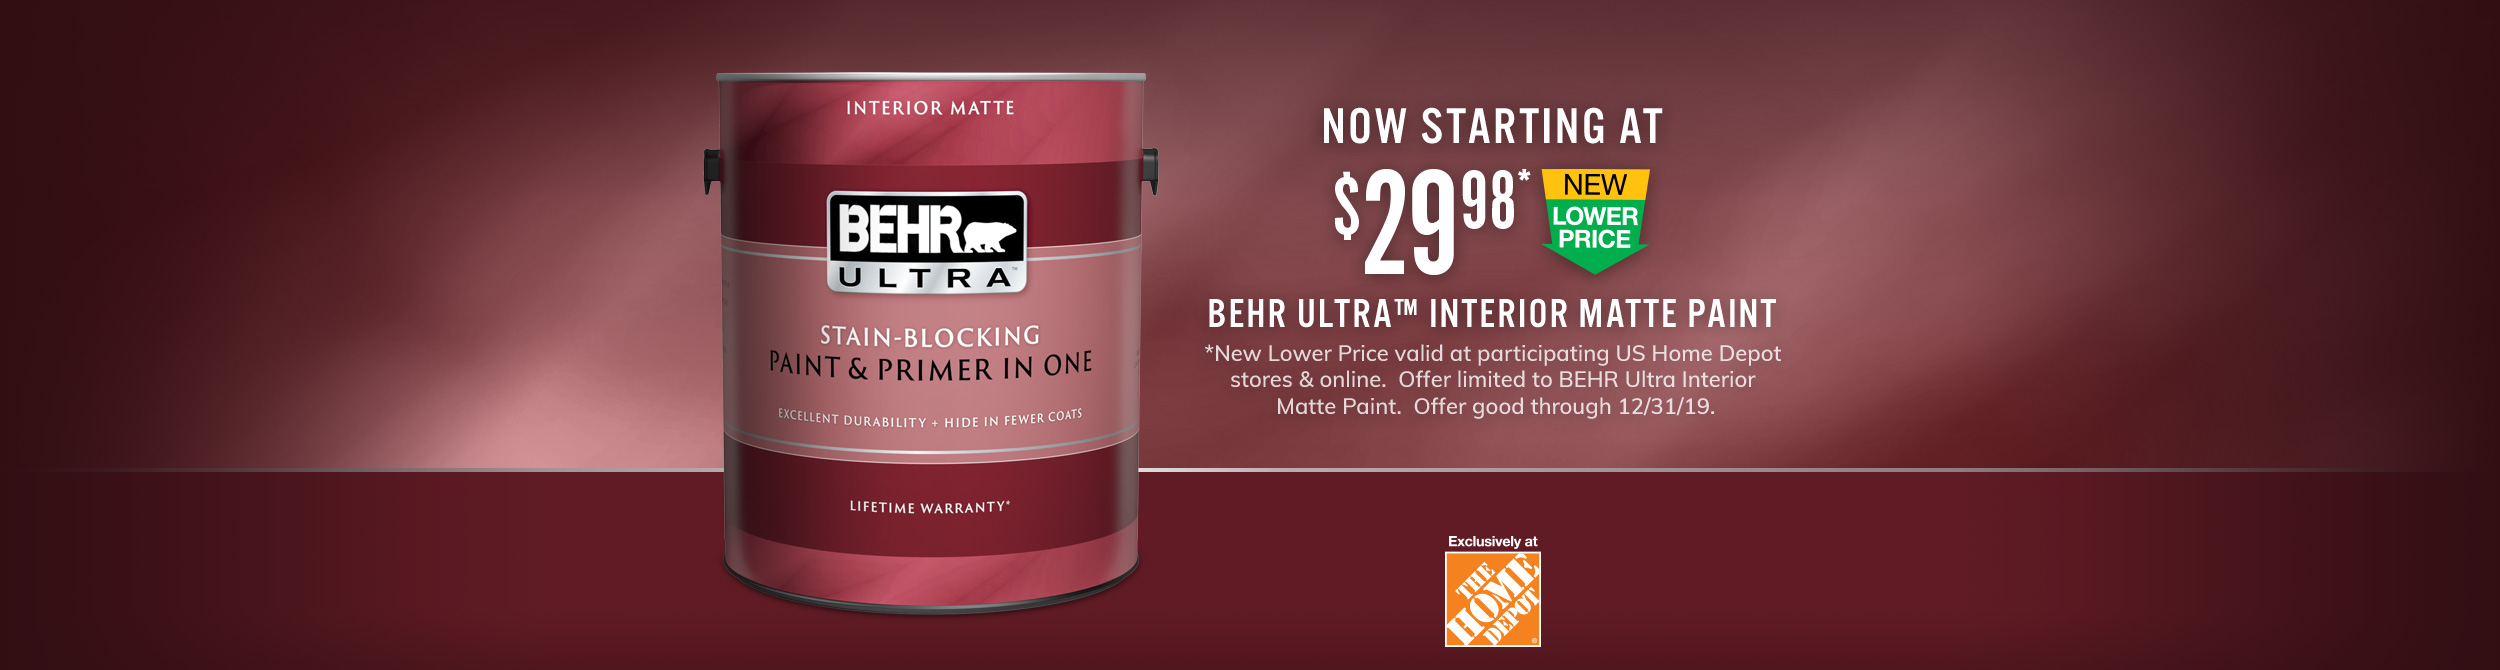 Exterior Paint Interior Paint Wood Stains Behr